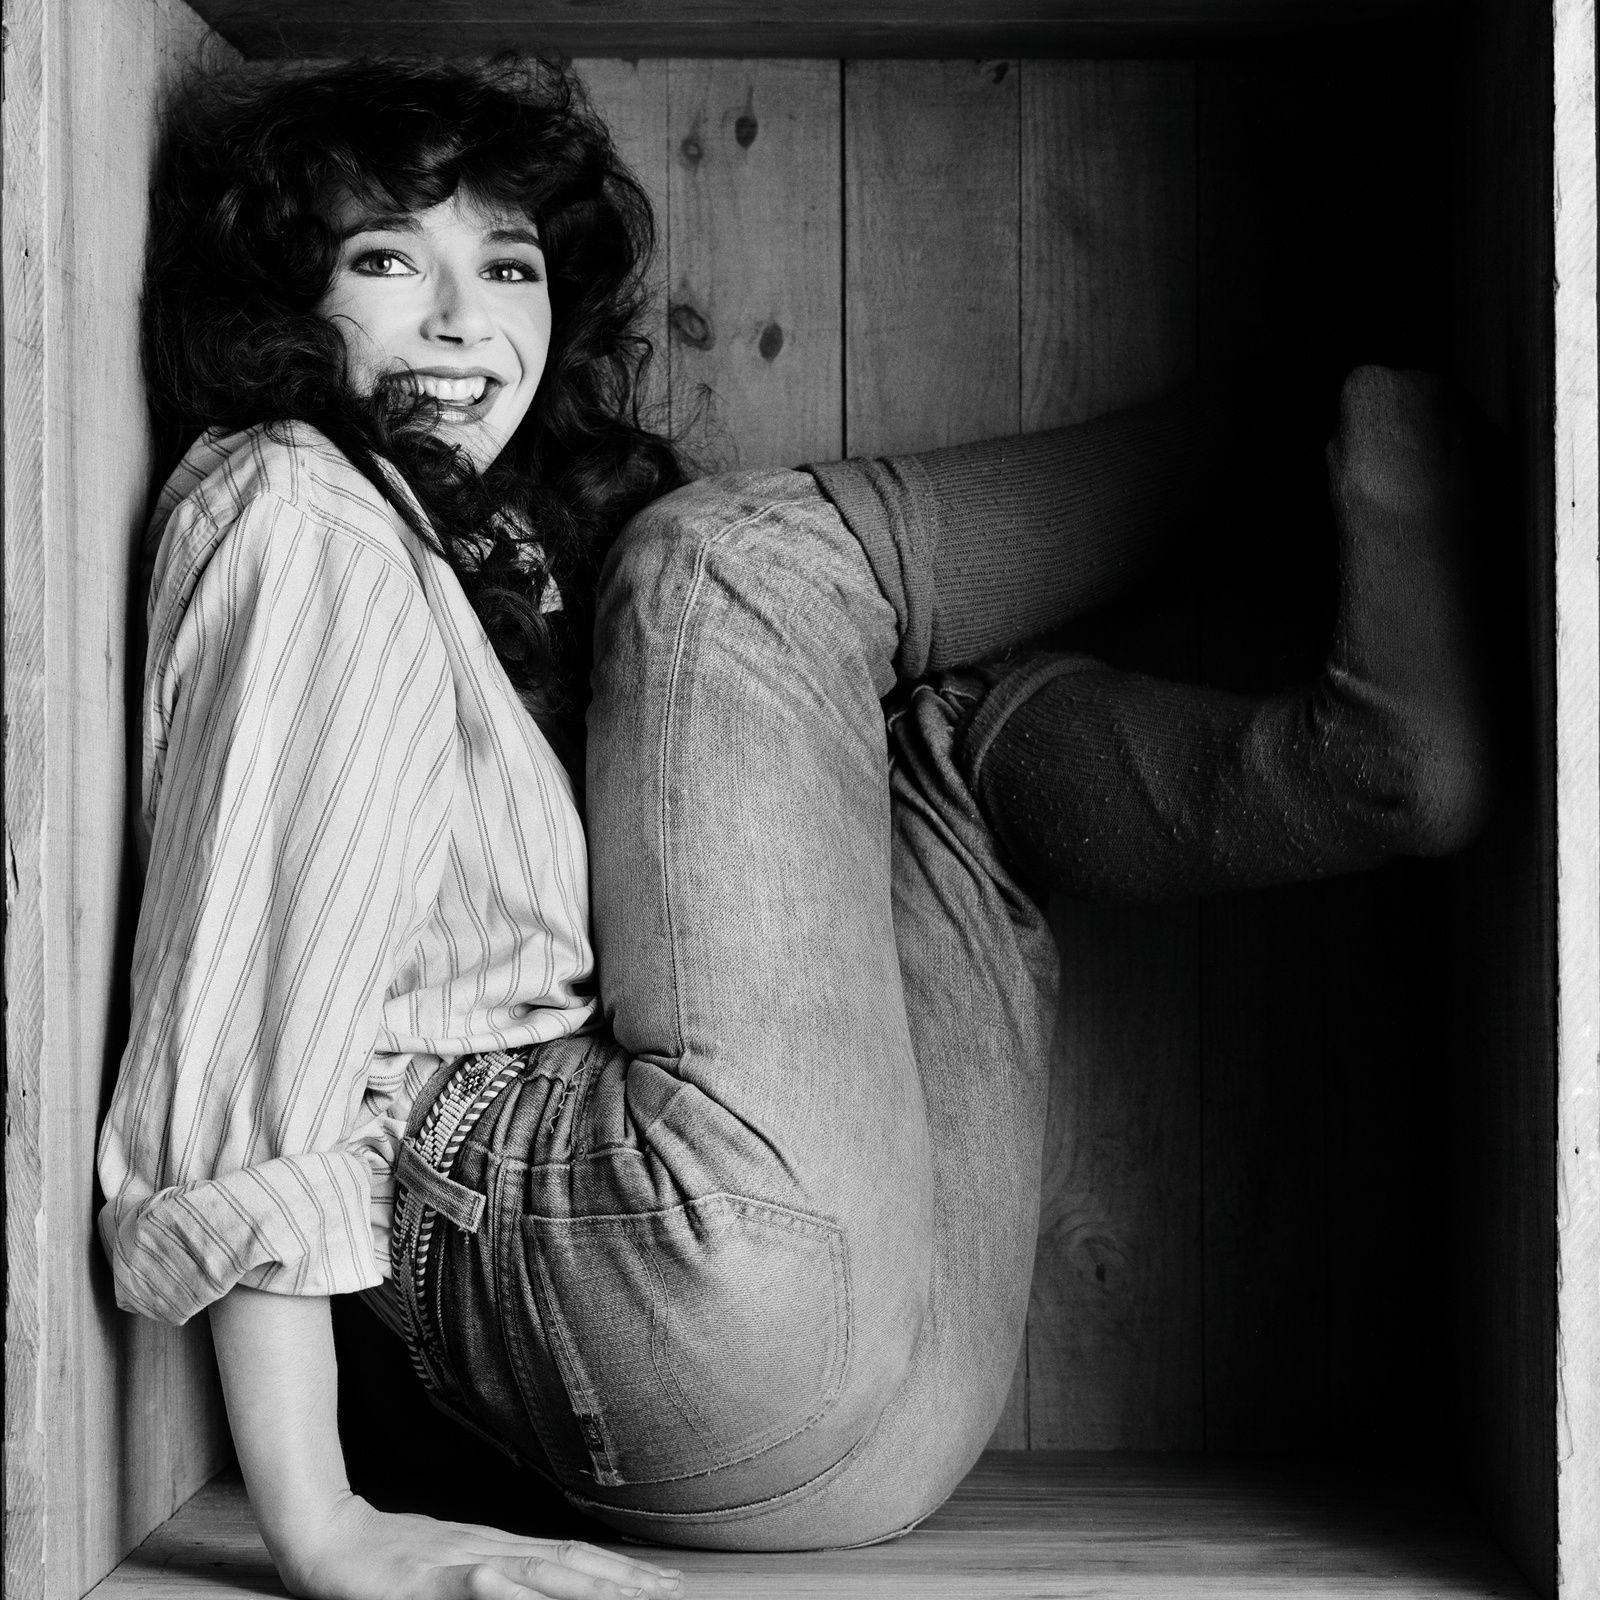 Kate Bush - 1978 - credit: Gered mankowitz